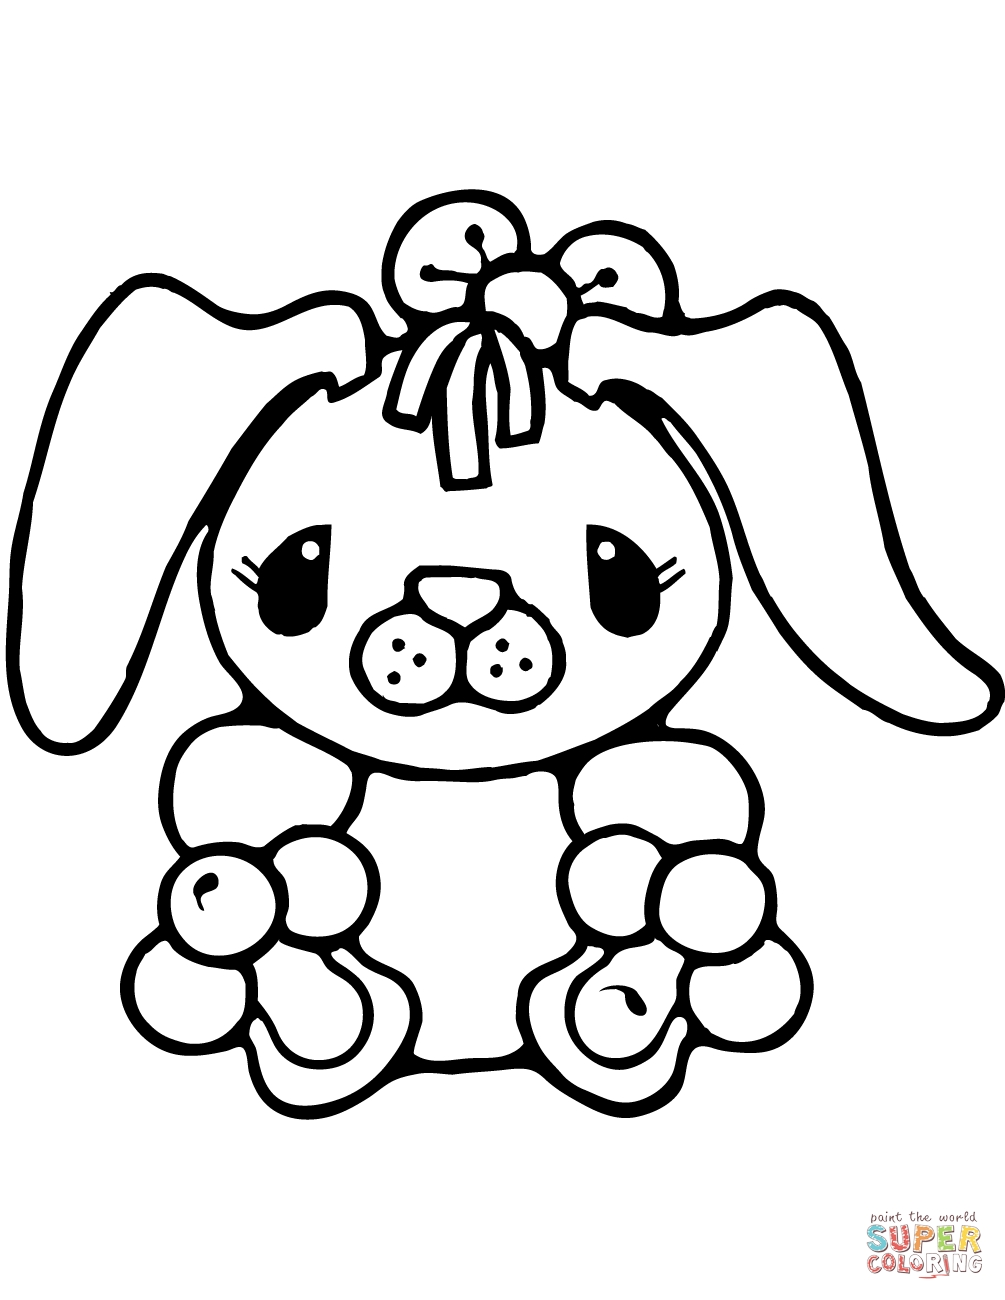 bunny rabbit coloring pages - tiny bunny rabbit